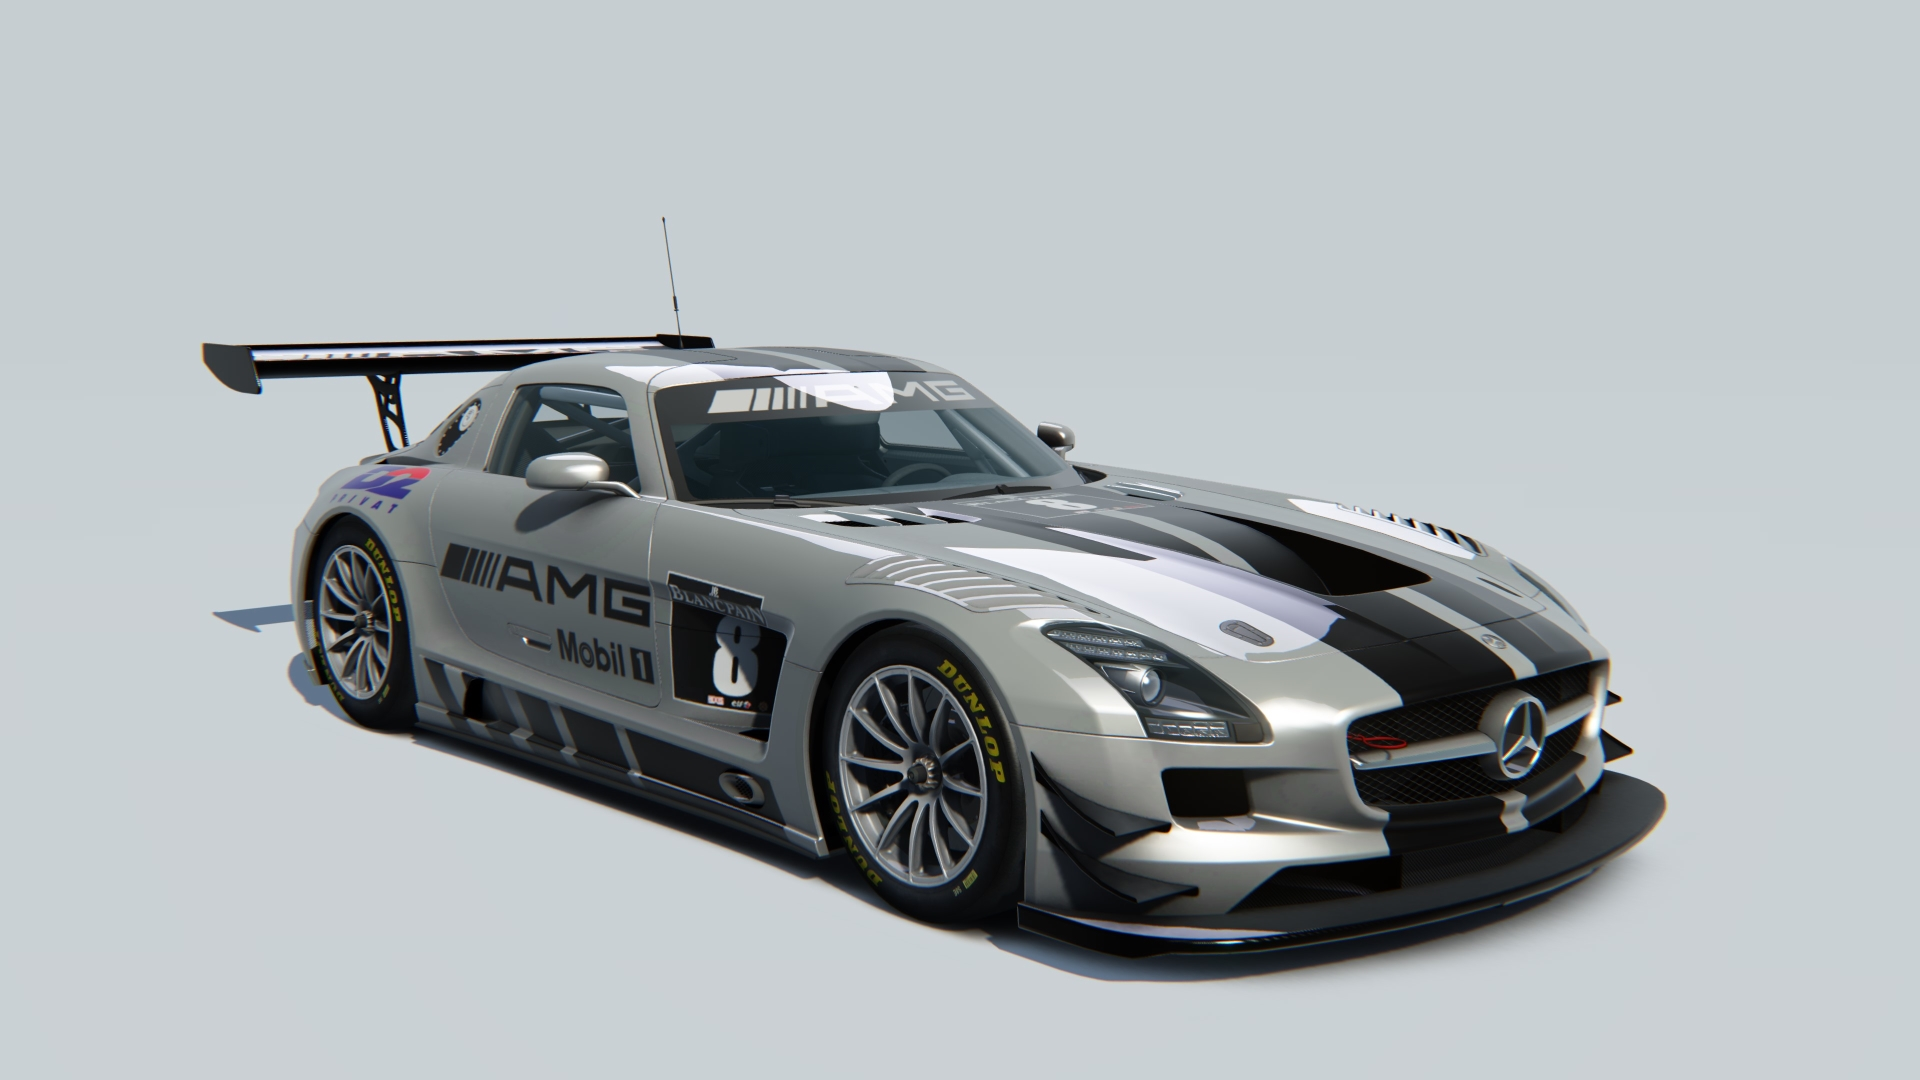 sls amg gt3 assetto corsa. Black Bedroom Furniture Sets. Home Design Ideas